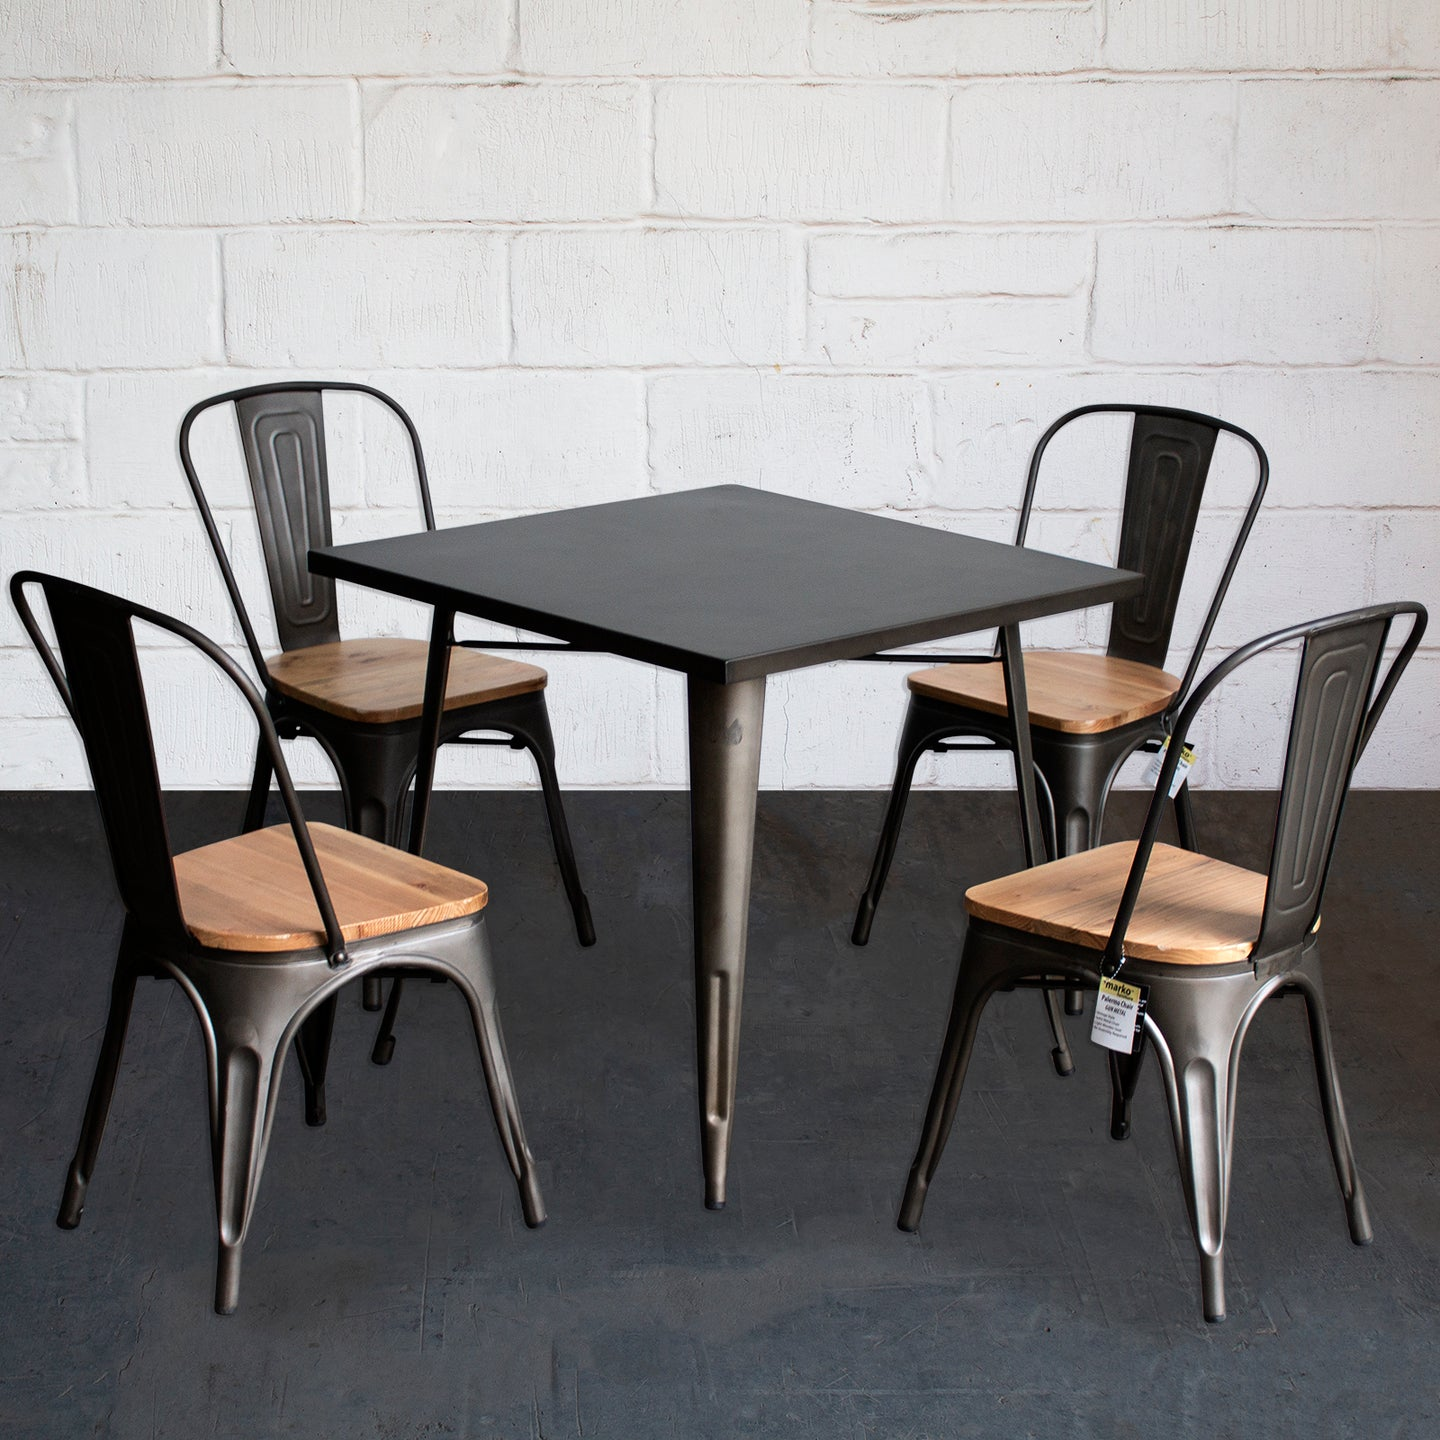 5PC Belvedere Table & Palermo Chair Set - Gun Metal Grey